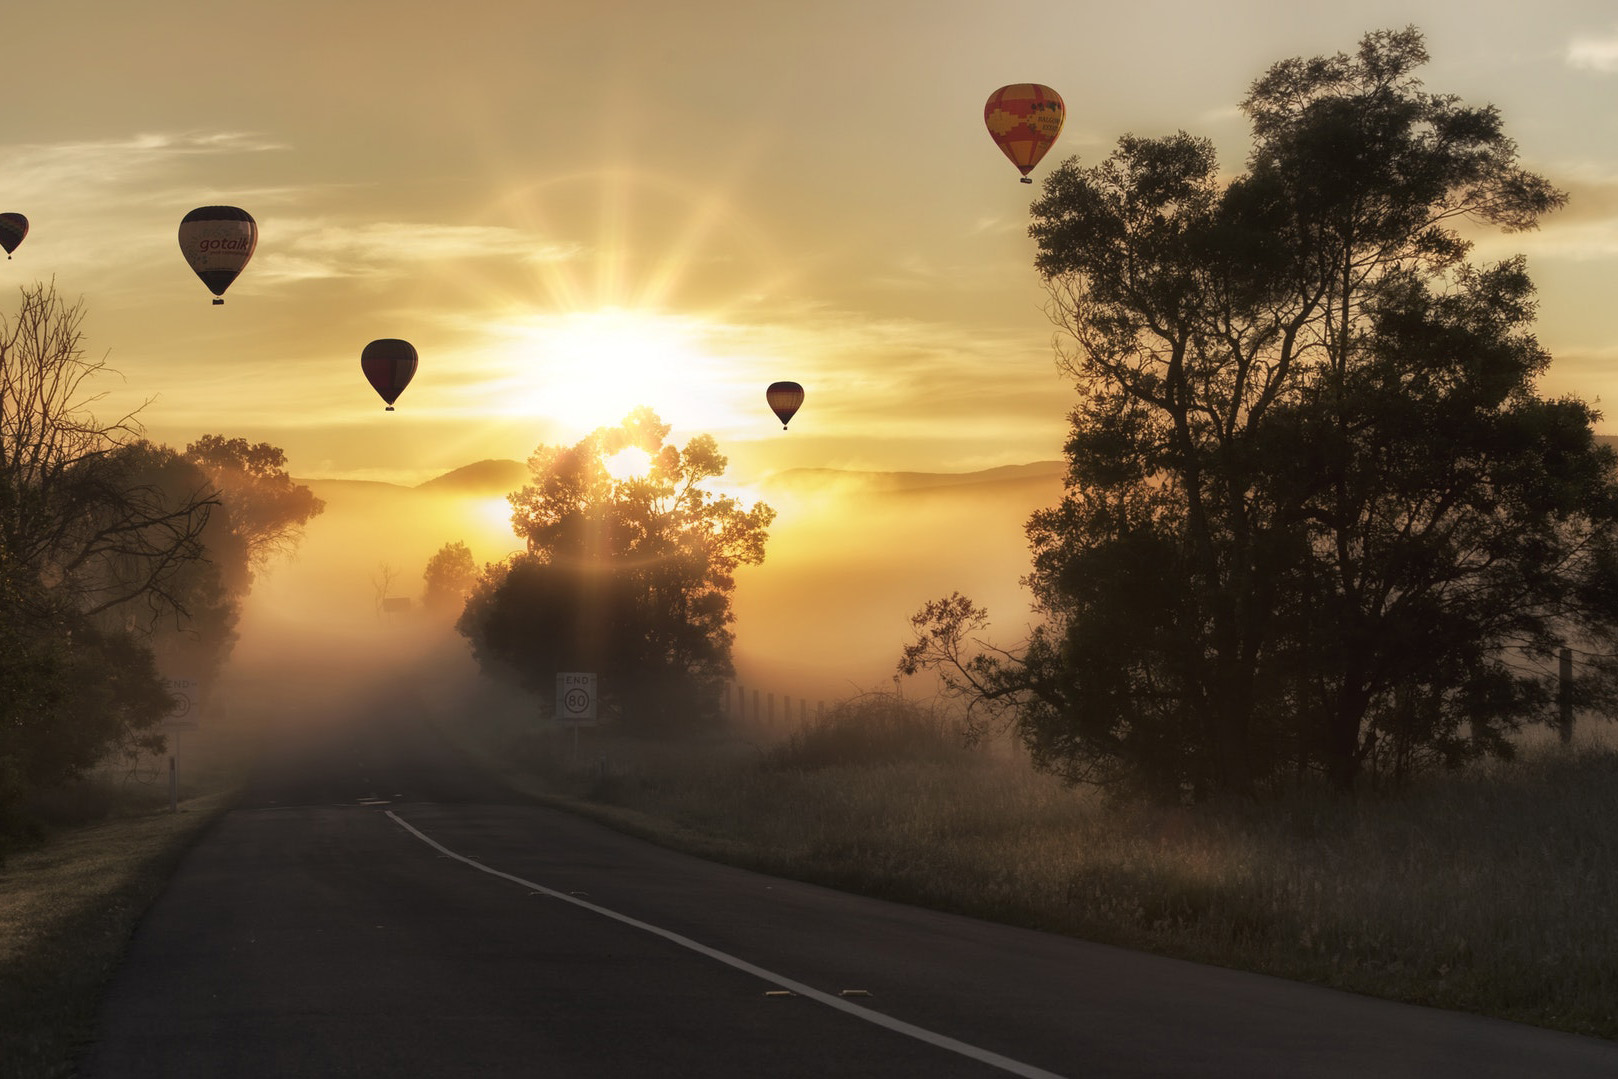 Misty Road and Hot Air Balloons